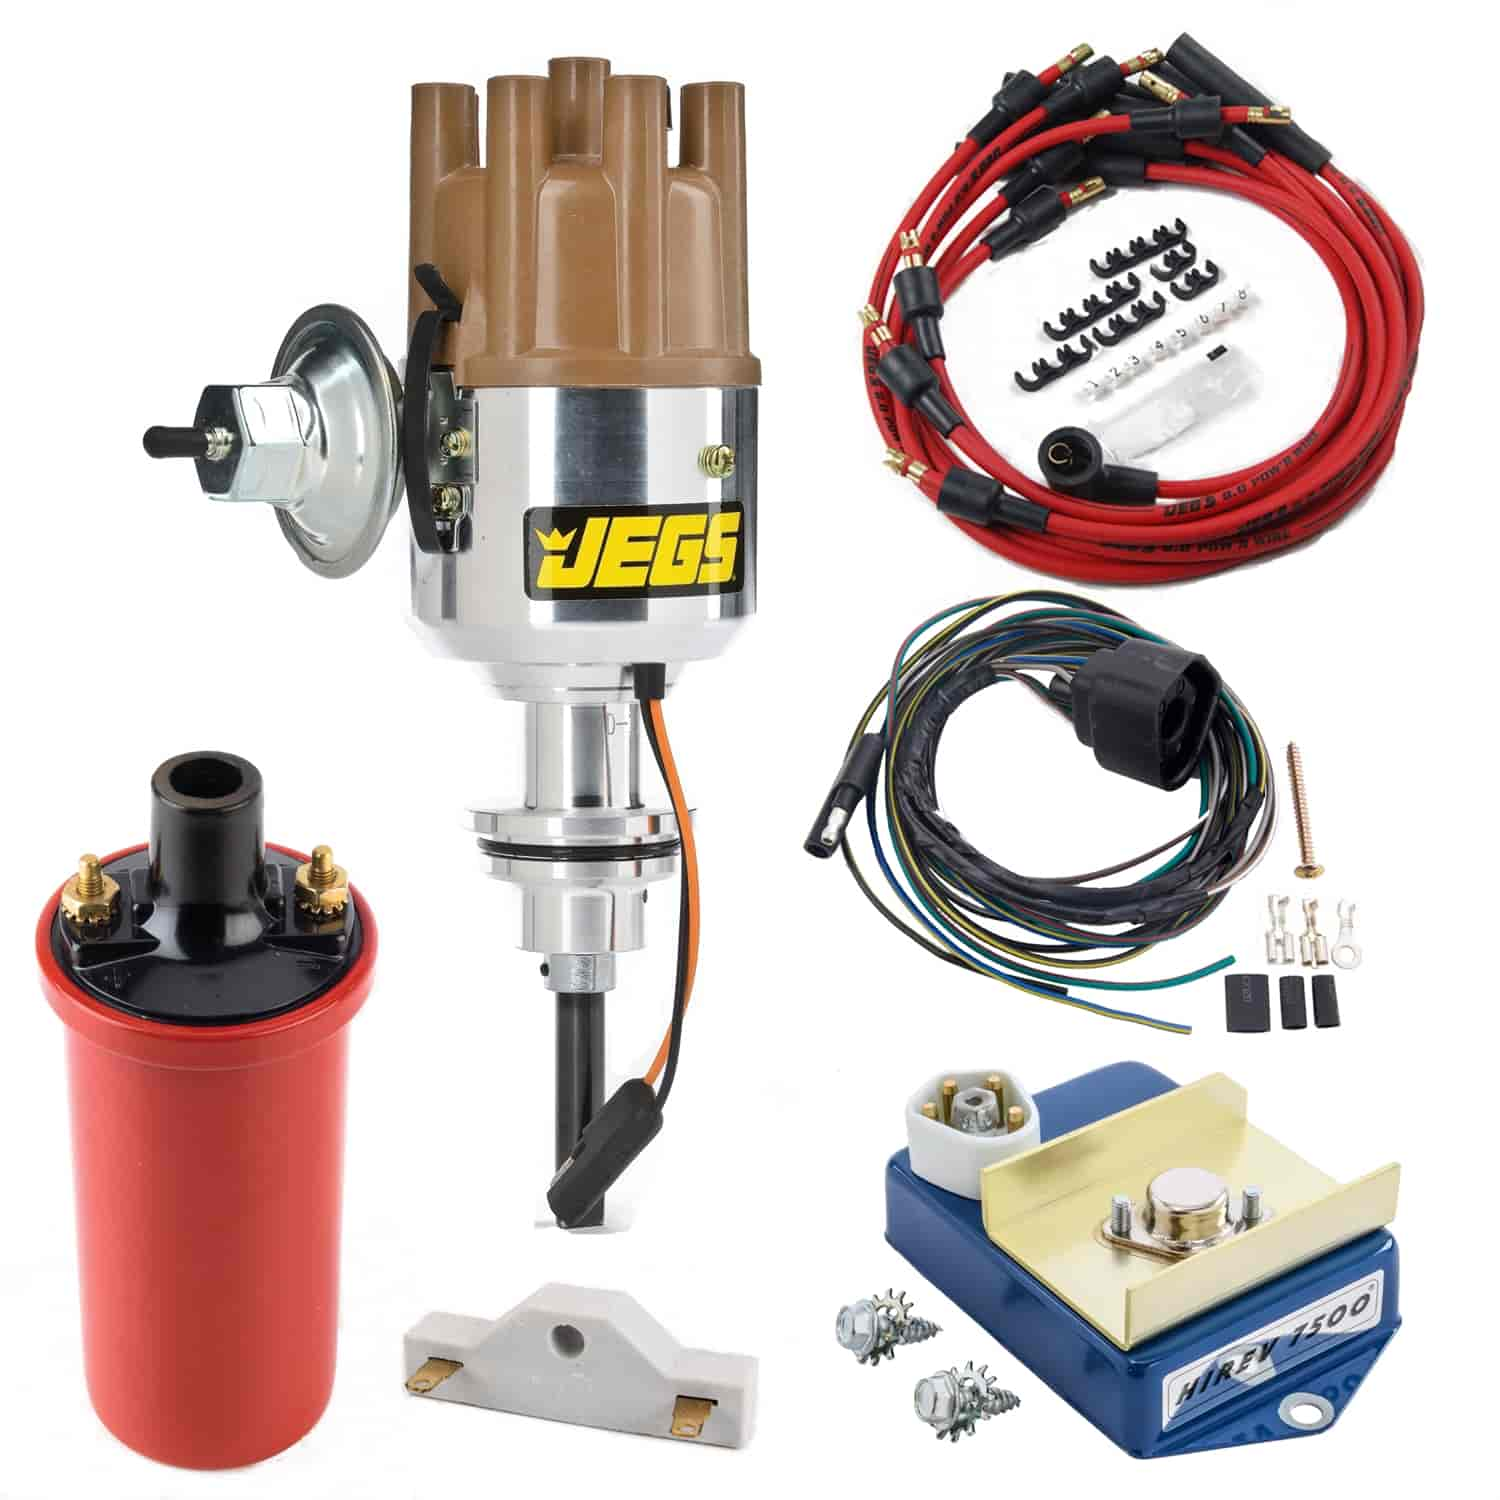 JEGS Electronic Ignition - Complete Kit Fits Small Block Mopar  273/318/340/360